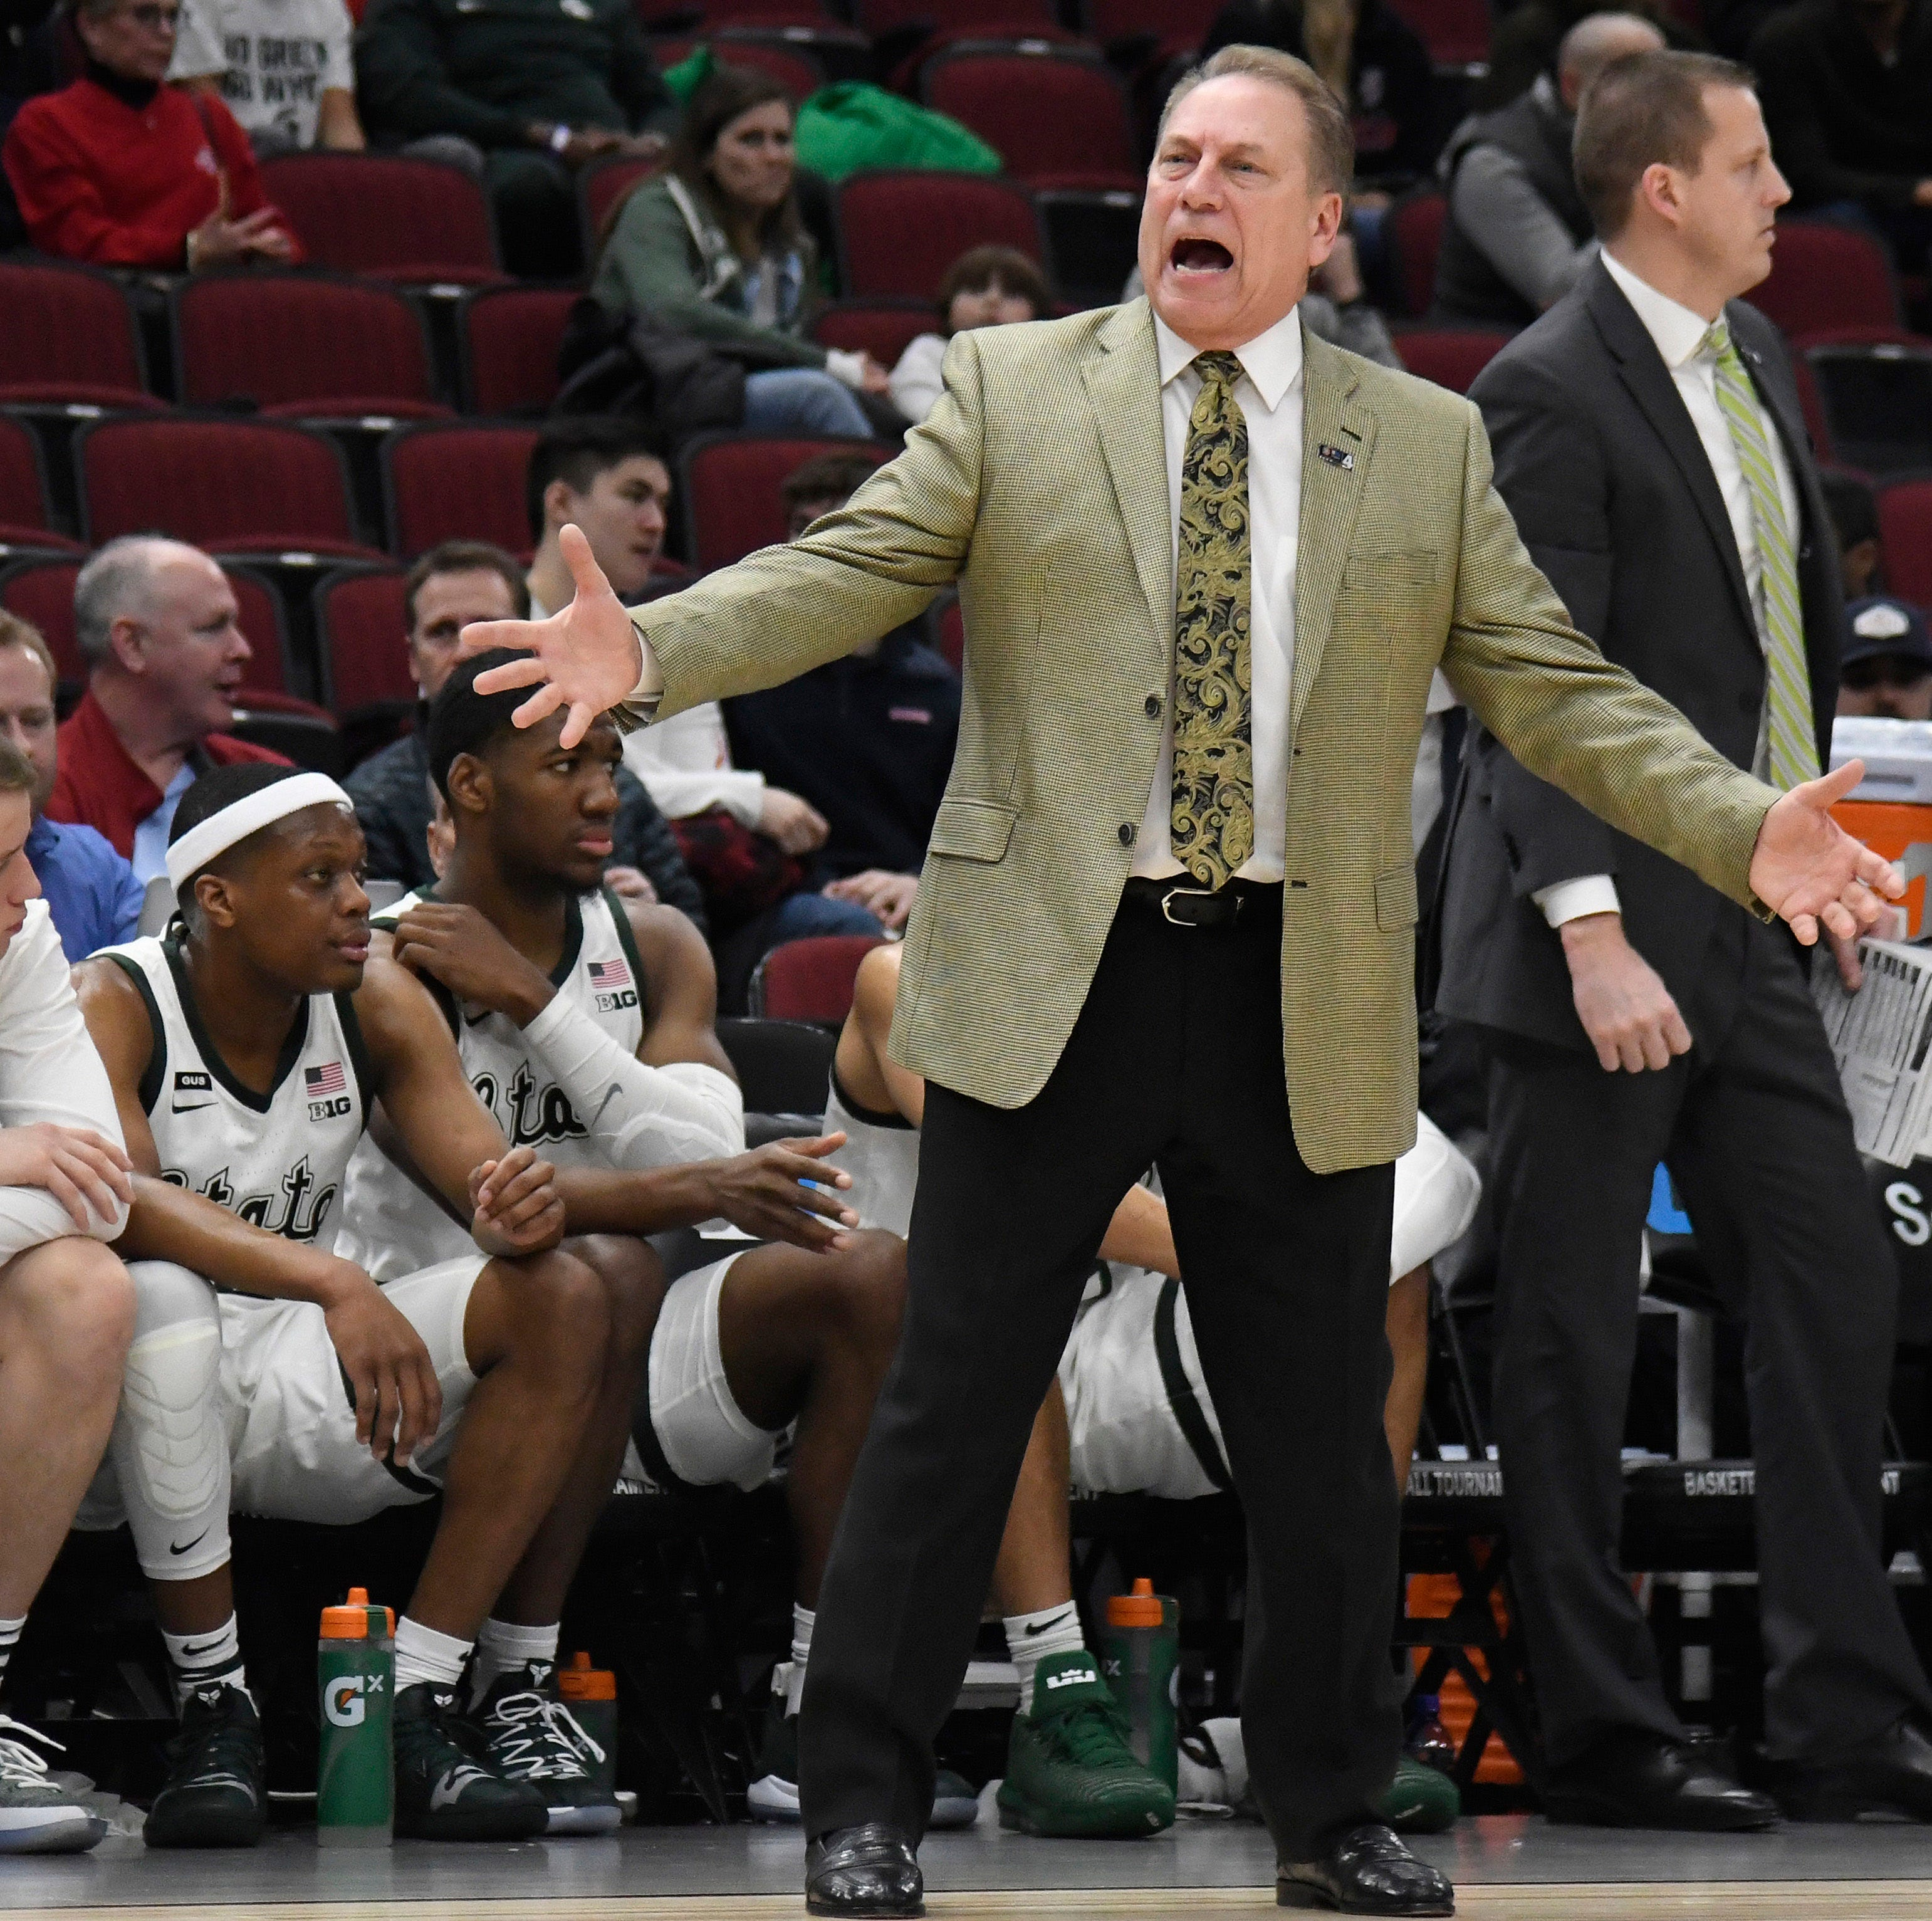 'What is up with Cassius?' Tom Izzo challenges his star. Winston responds.